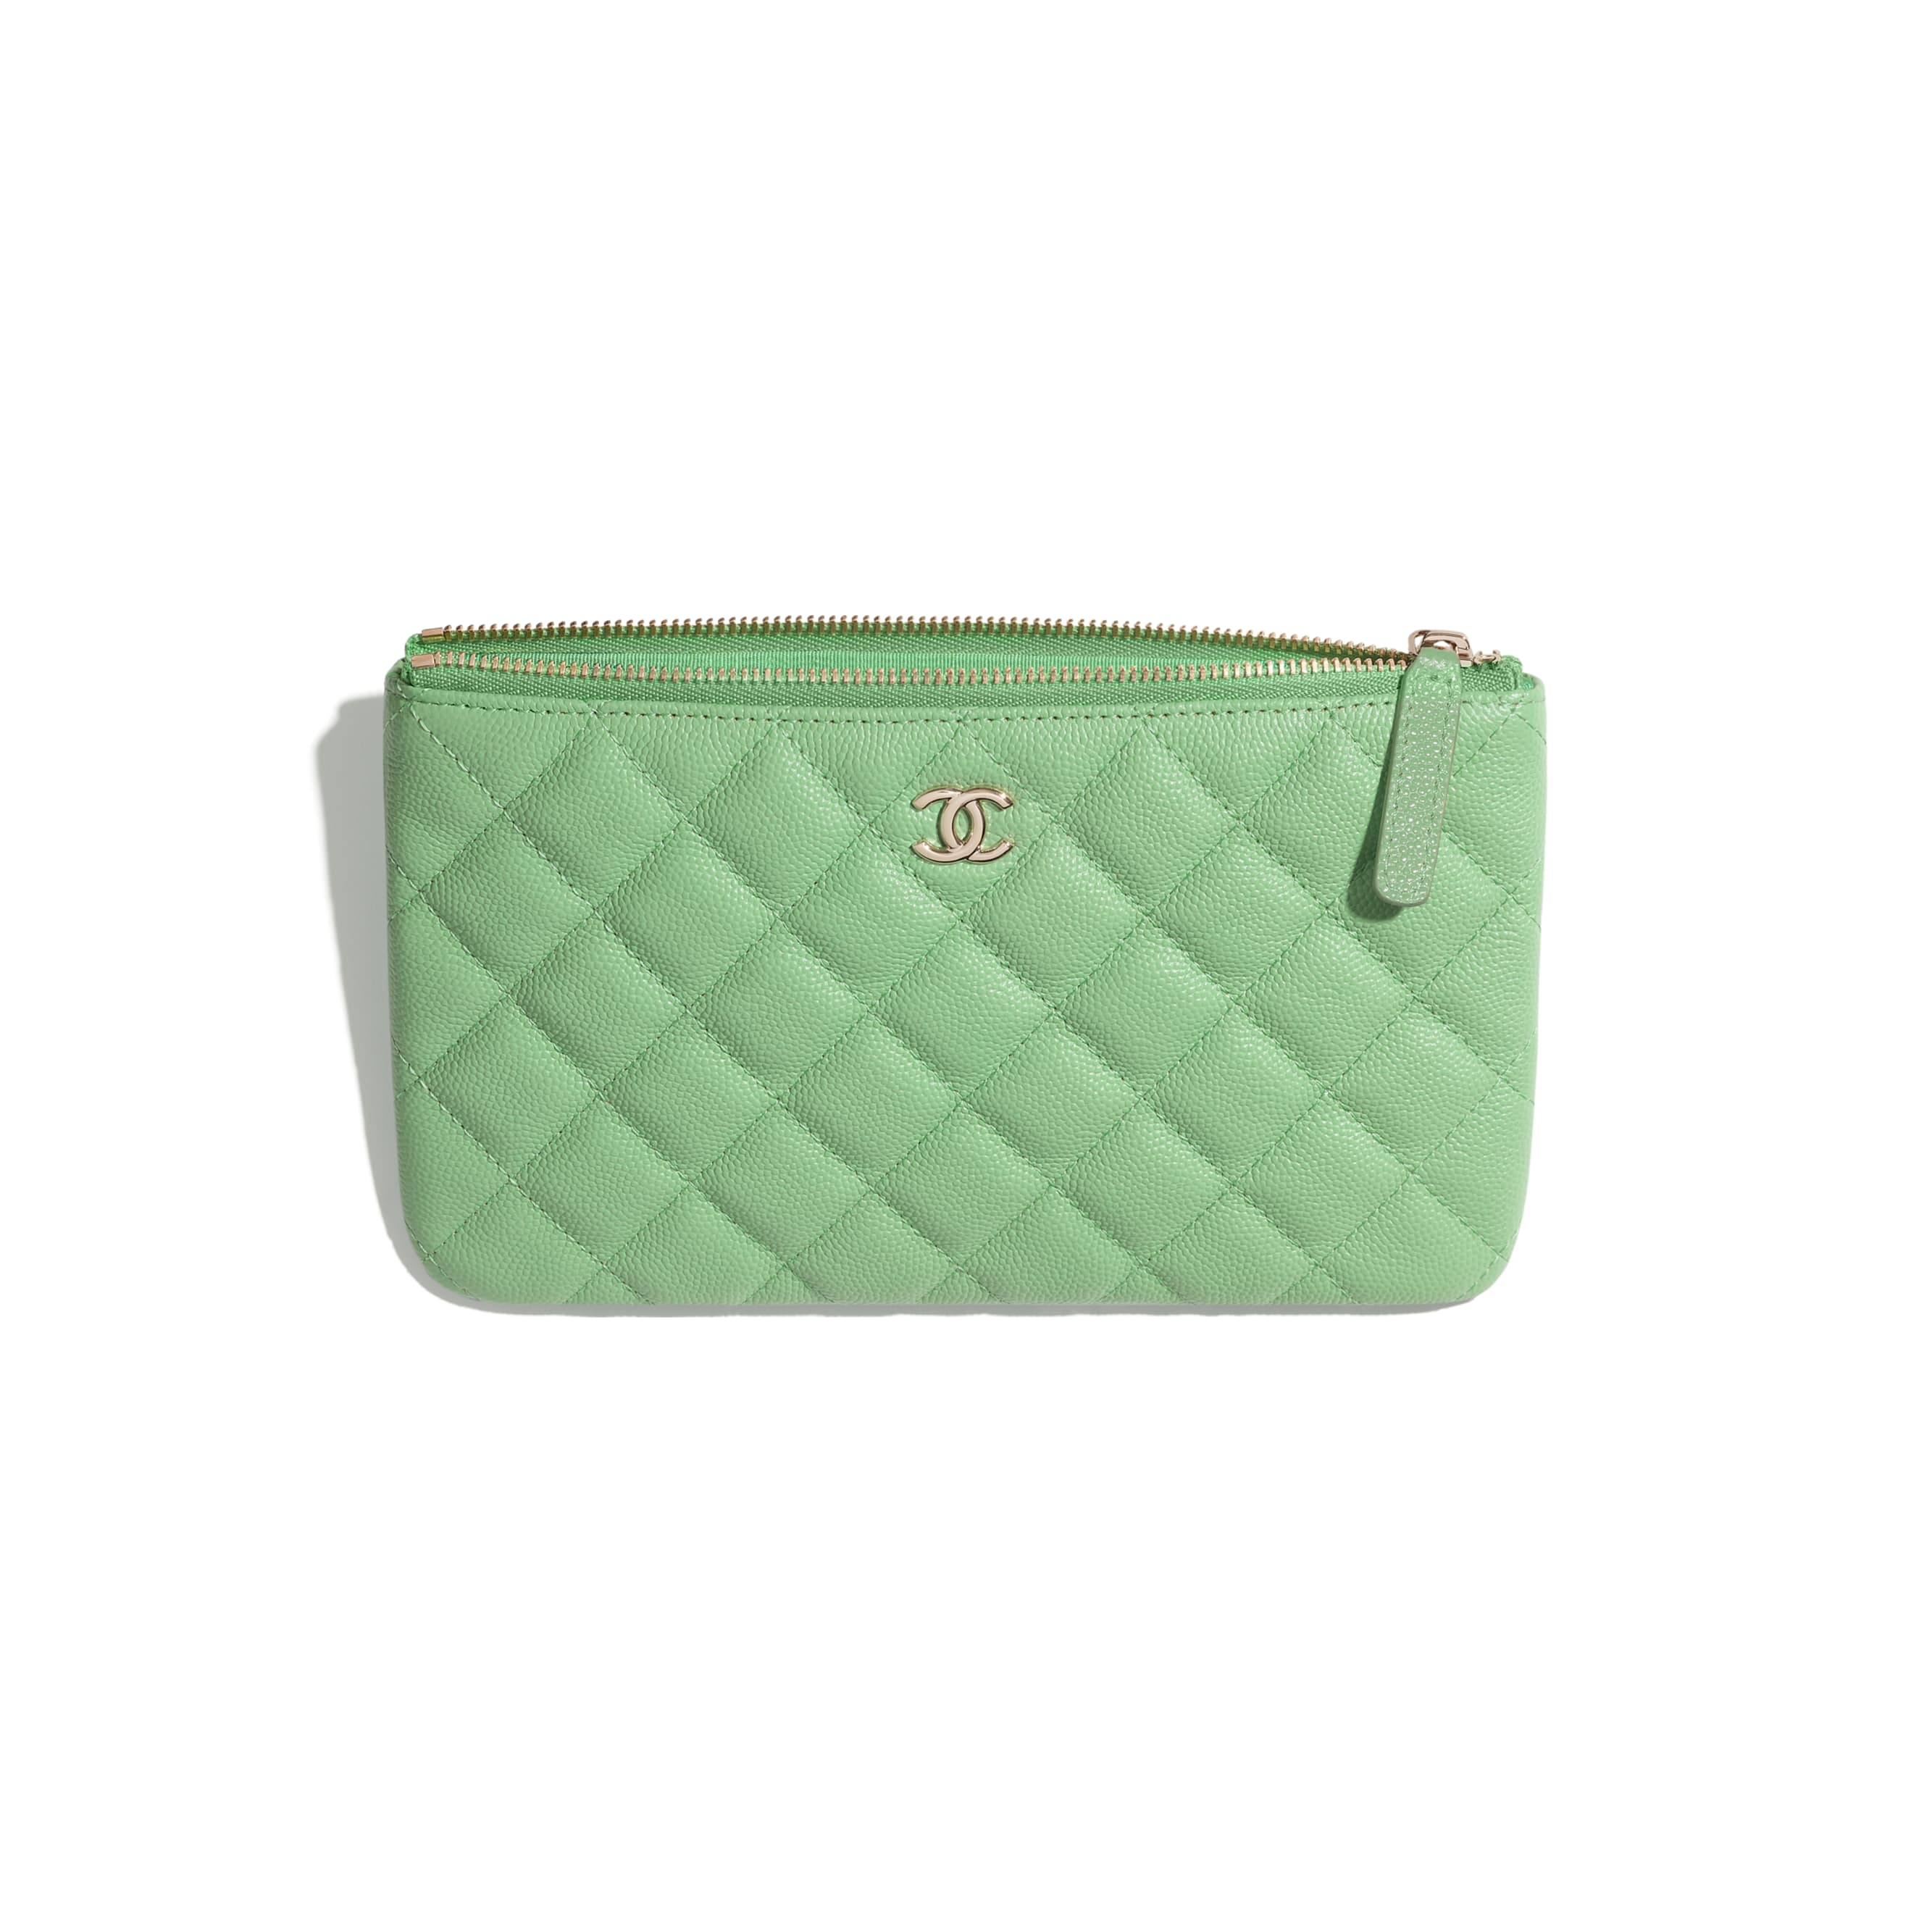 Classic Small Pouch - Green - Grained Calfskin & Gold-Tone Metal - CHANEL - Other view - see standard sized version